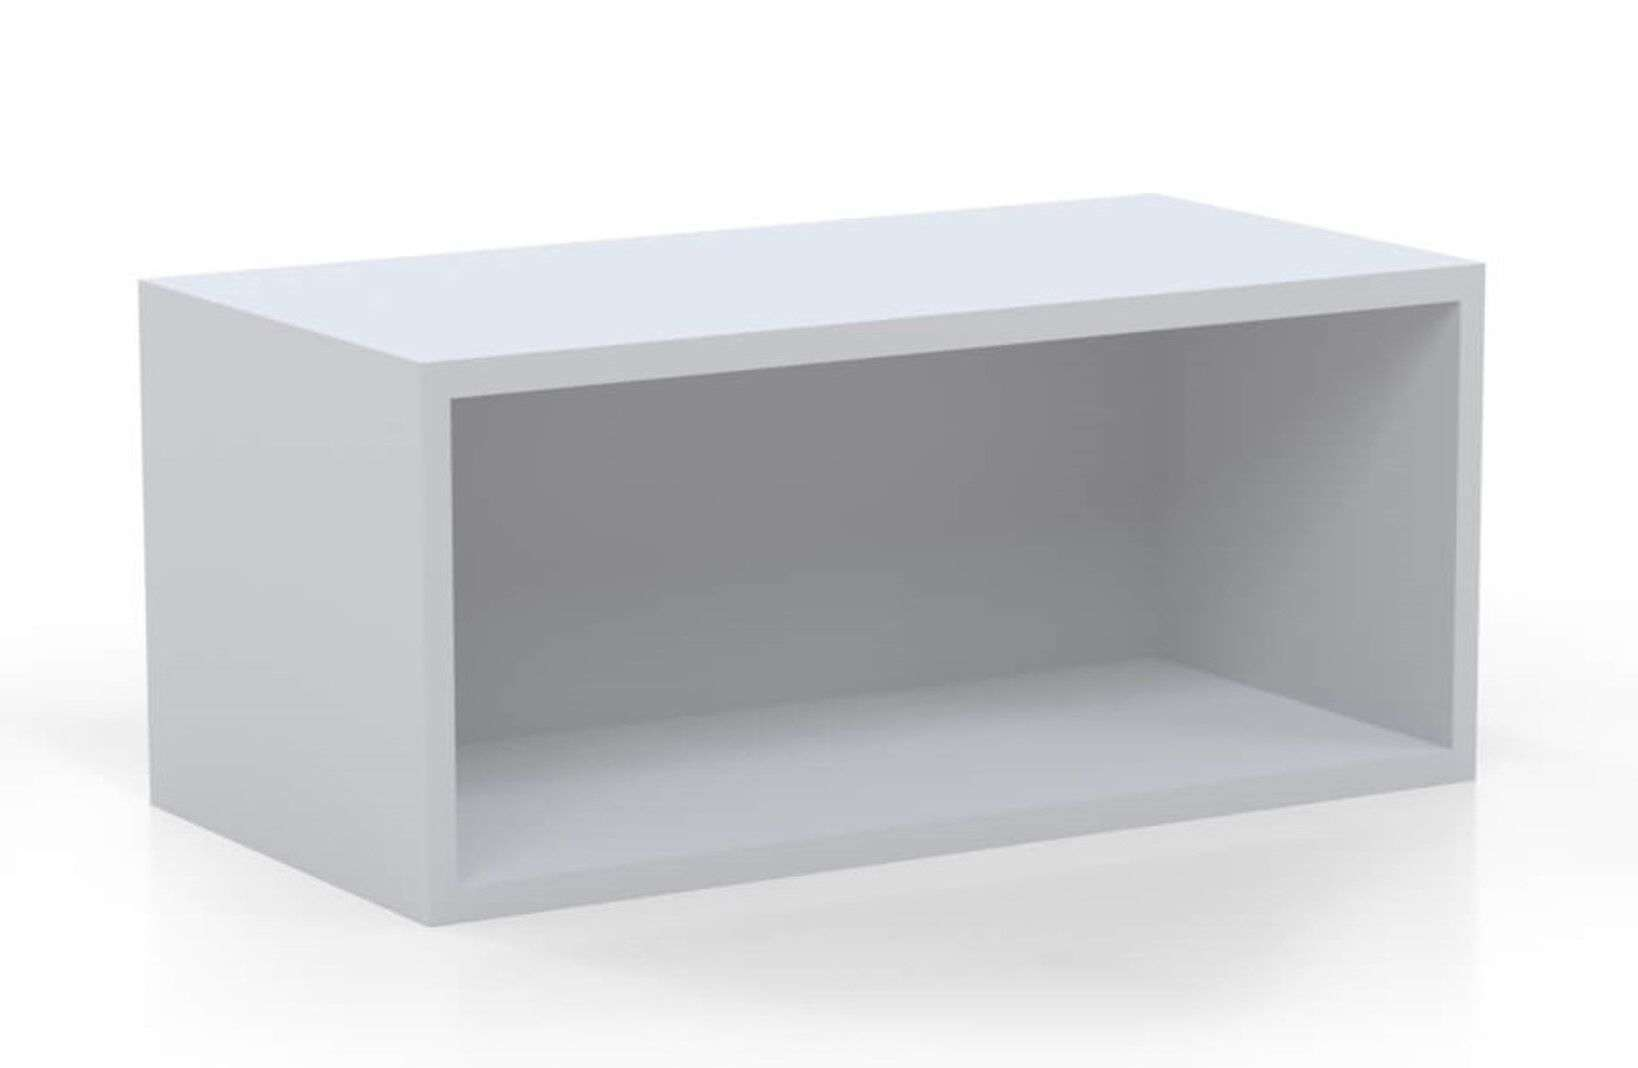 Lshaped desk with side storage wall mount hutch white_preview